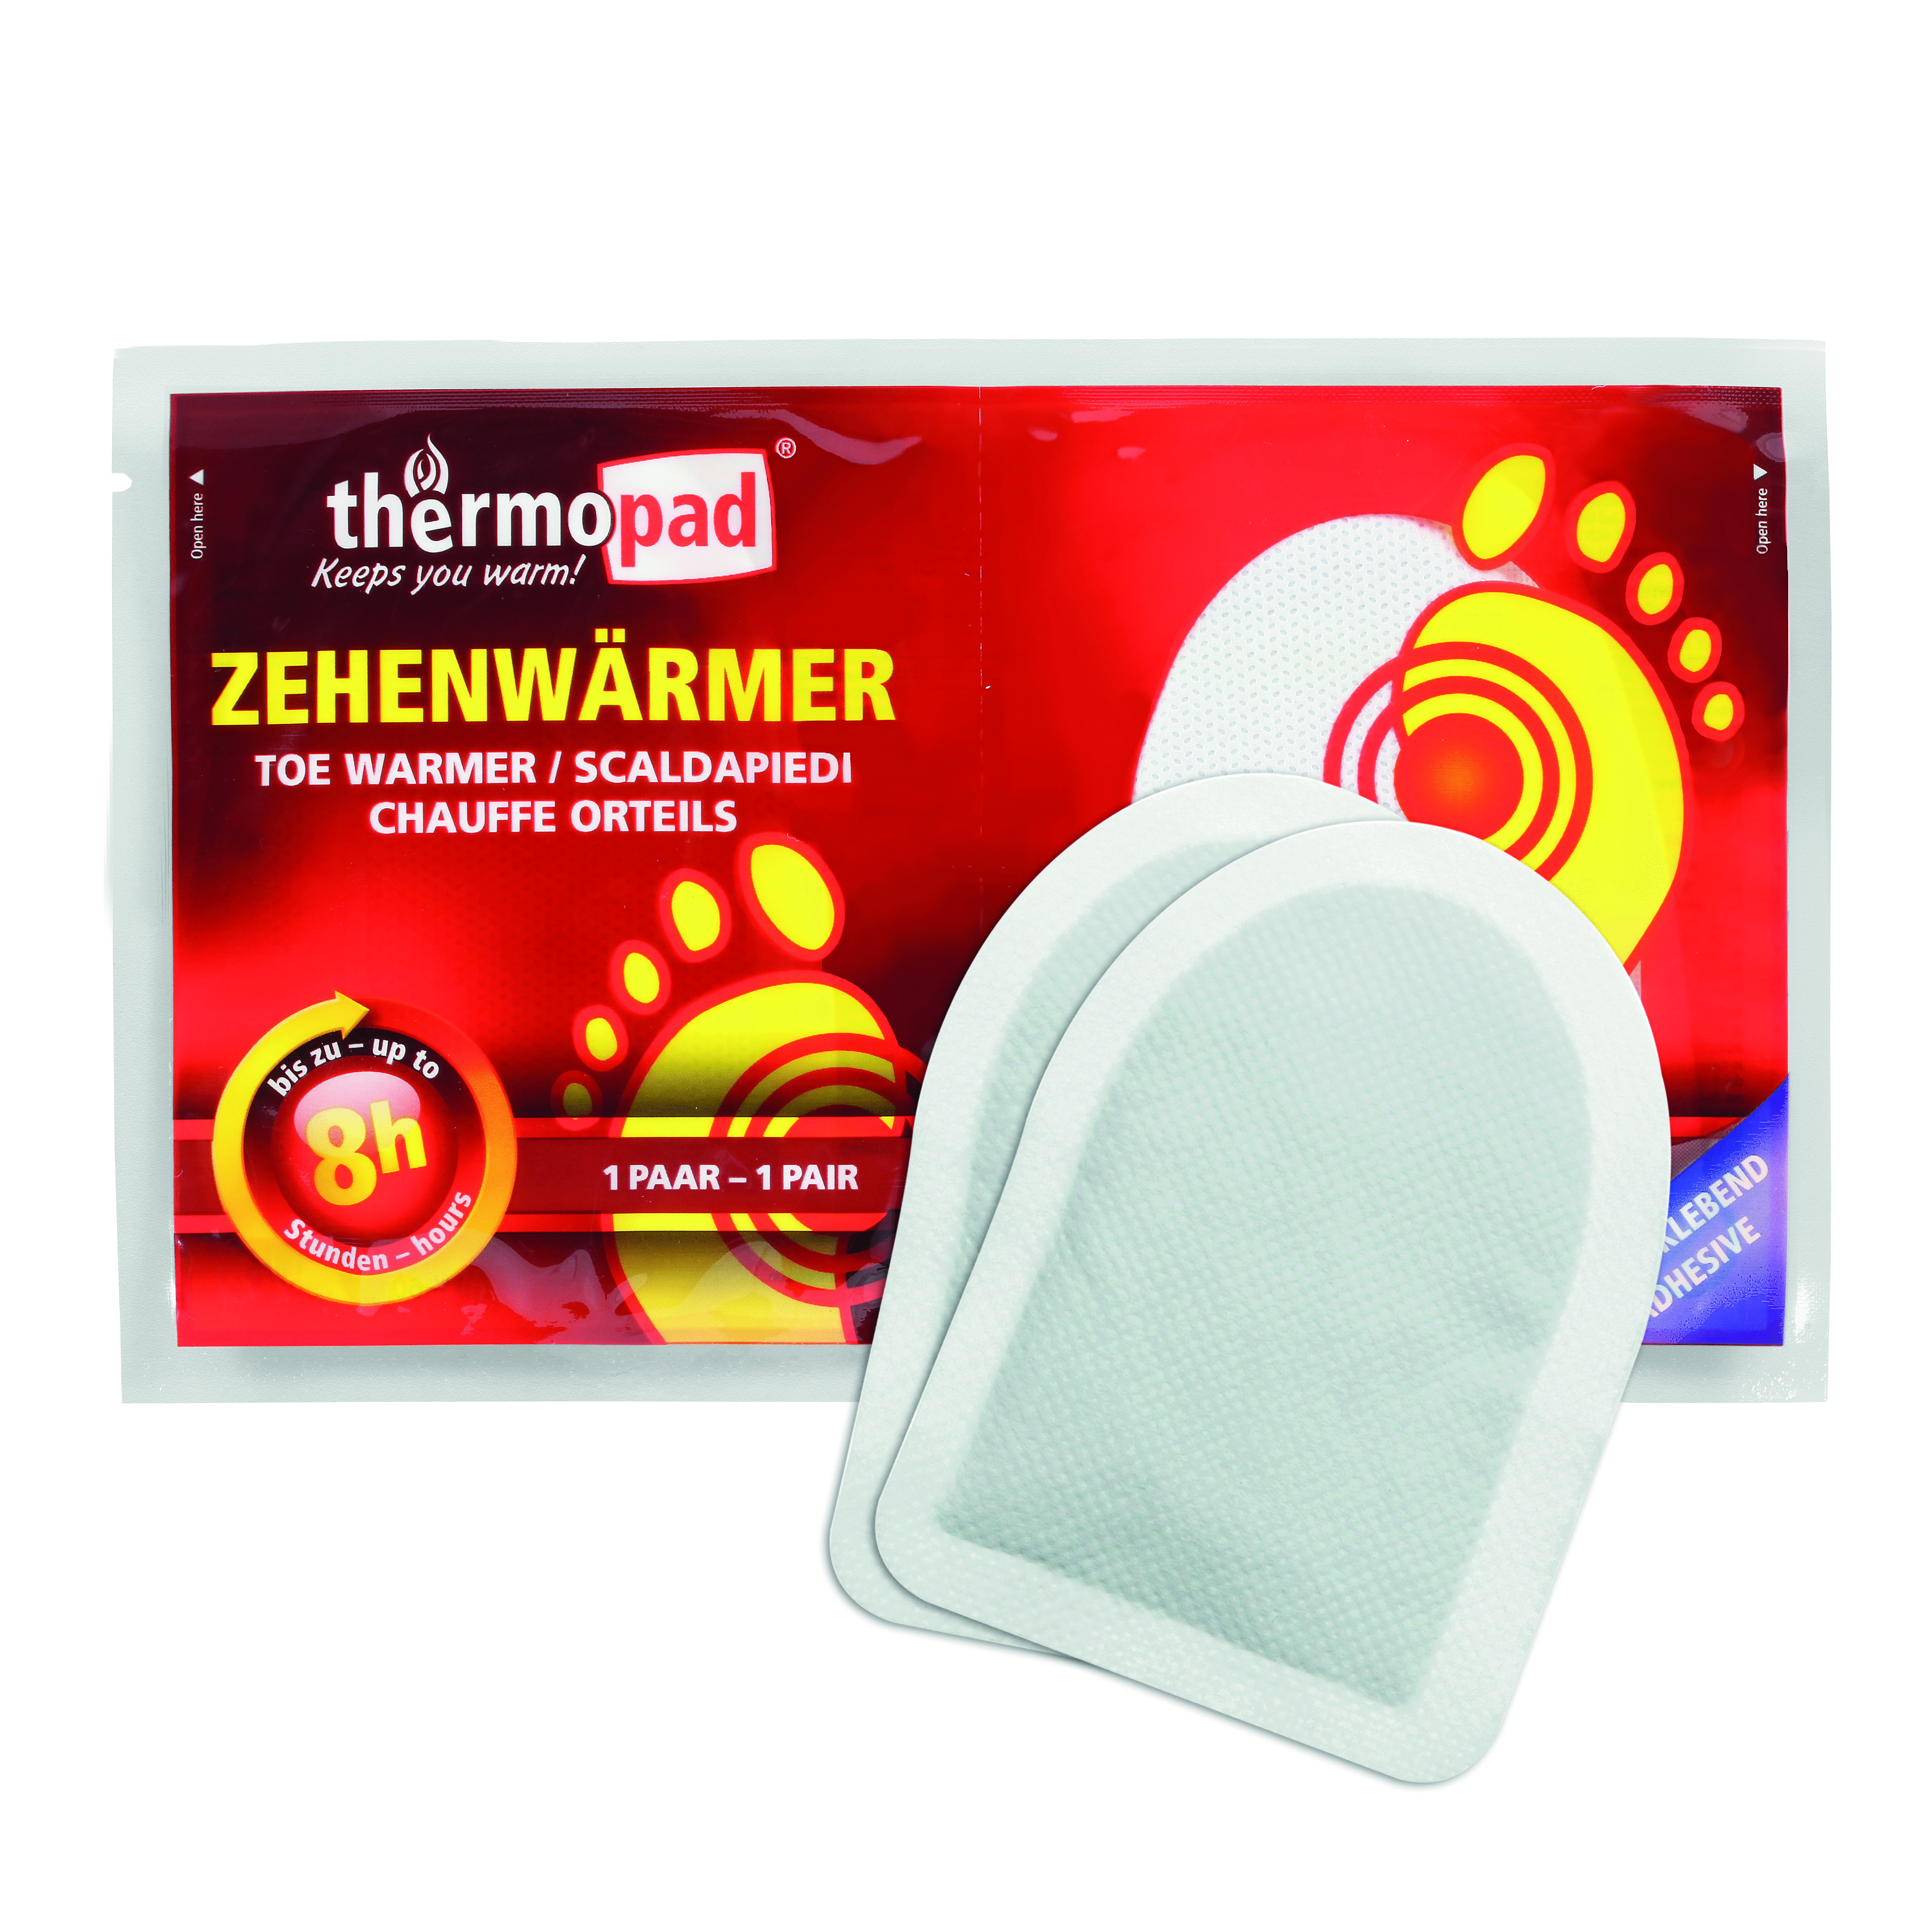 78020_Toewarmer_with_product